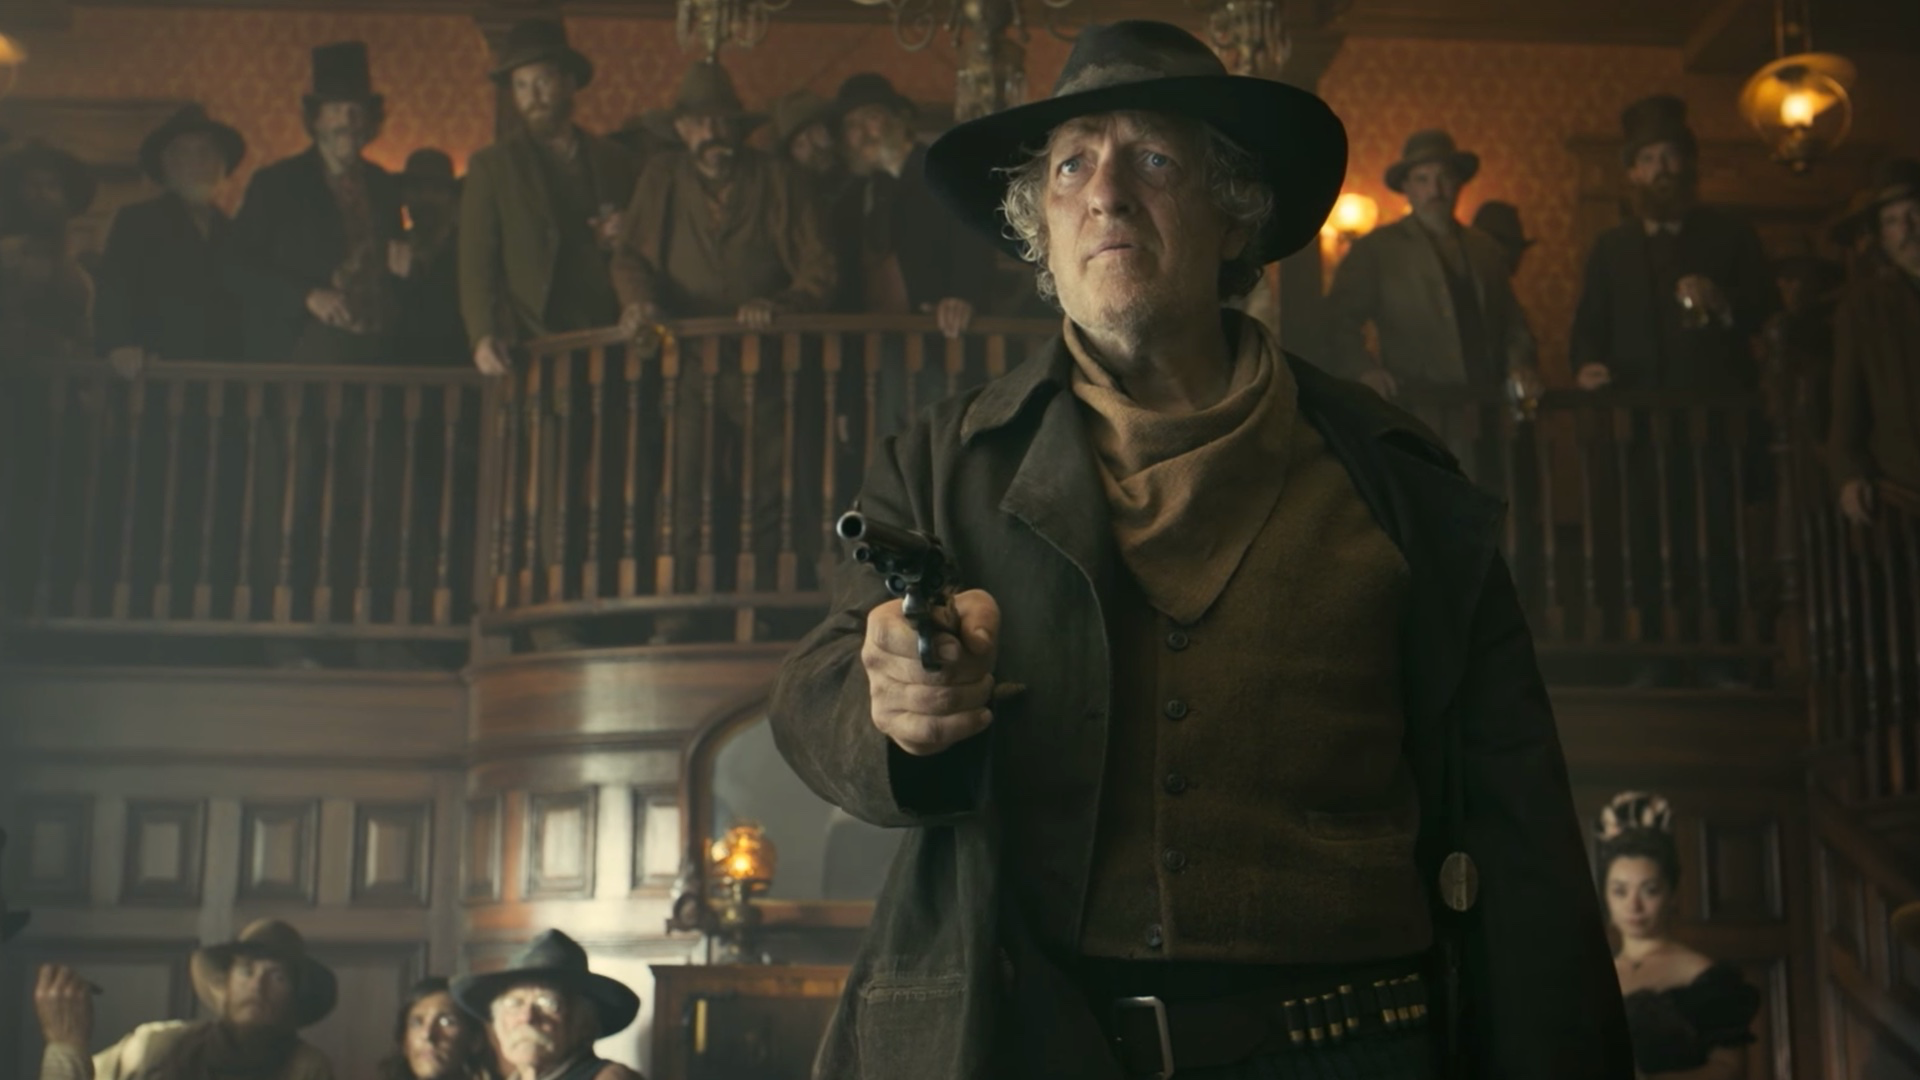 02 The Ballad of Buster Scruggs